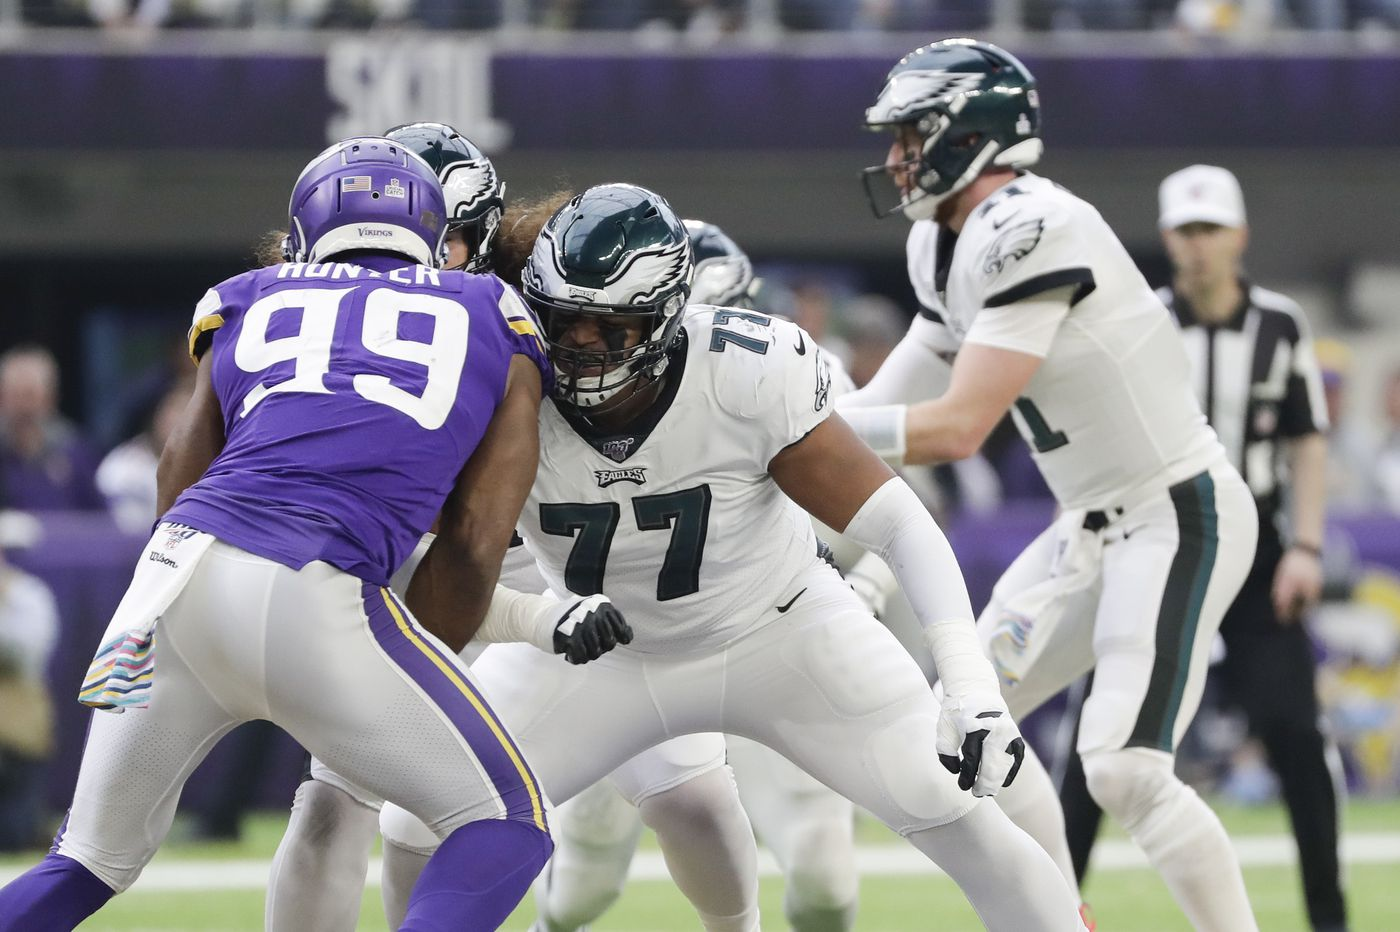 Eagles film analysis: Rookie tackle Andre Dillard shows strong footwork, some weaknesses too